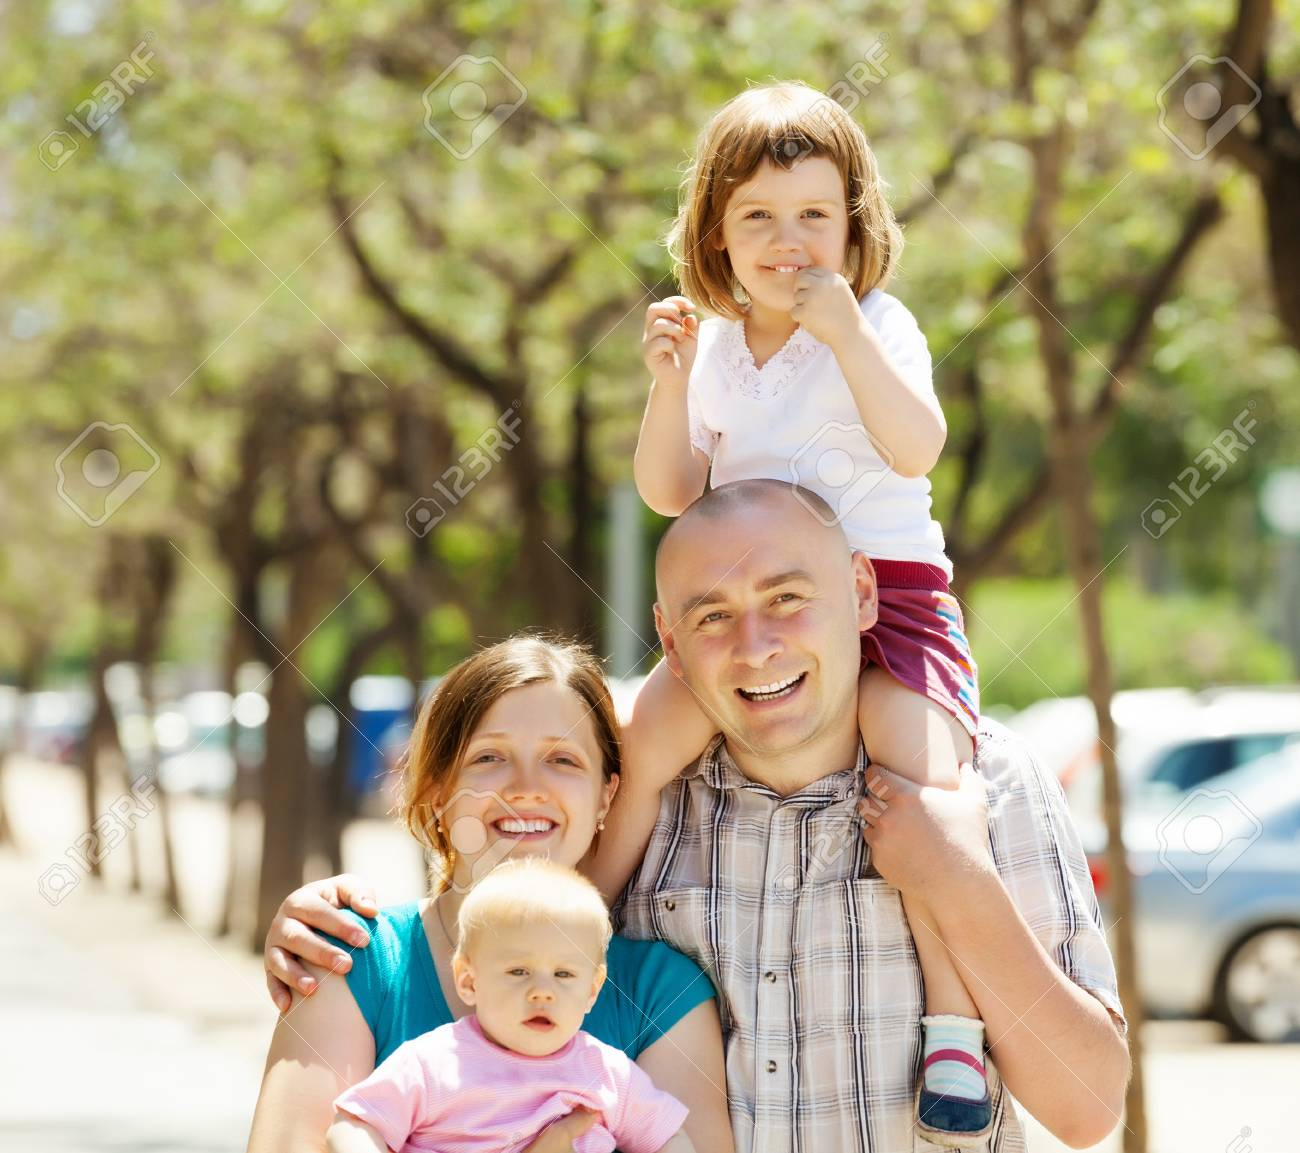 Happy couple together with children in summer street Stock Photo - 21621908